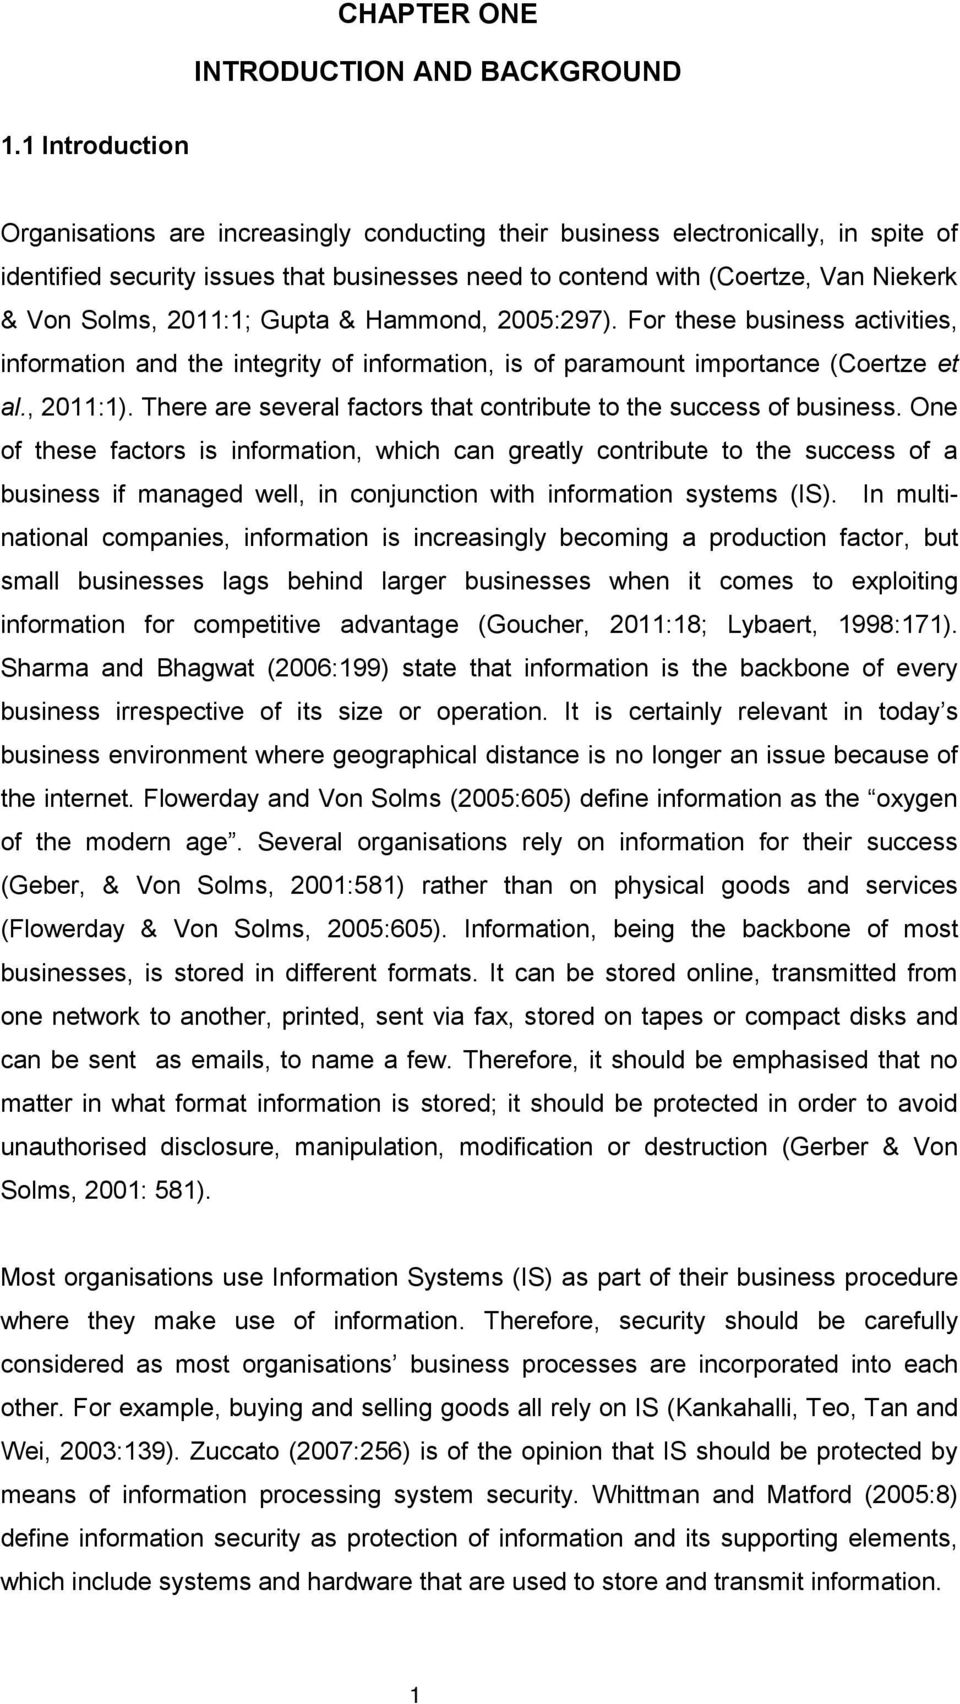 2011:1; Gupta & Hammond, 2005:297). For these business activities, information and the integrity of information, is of paramount importance (Coertze et al., 2011:1).